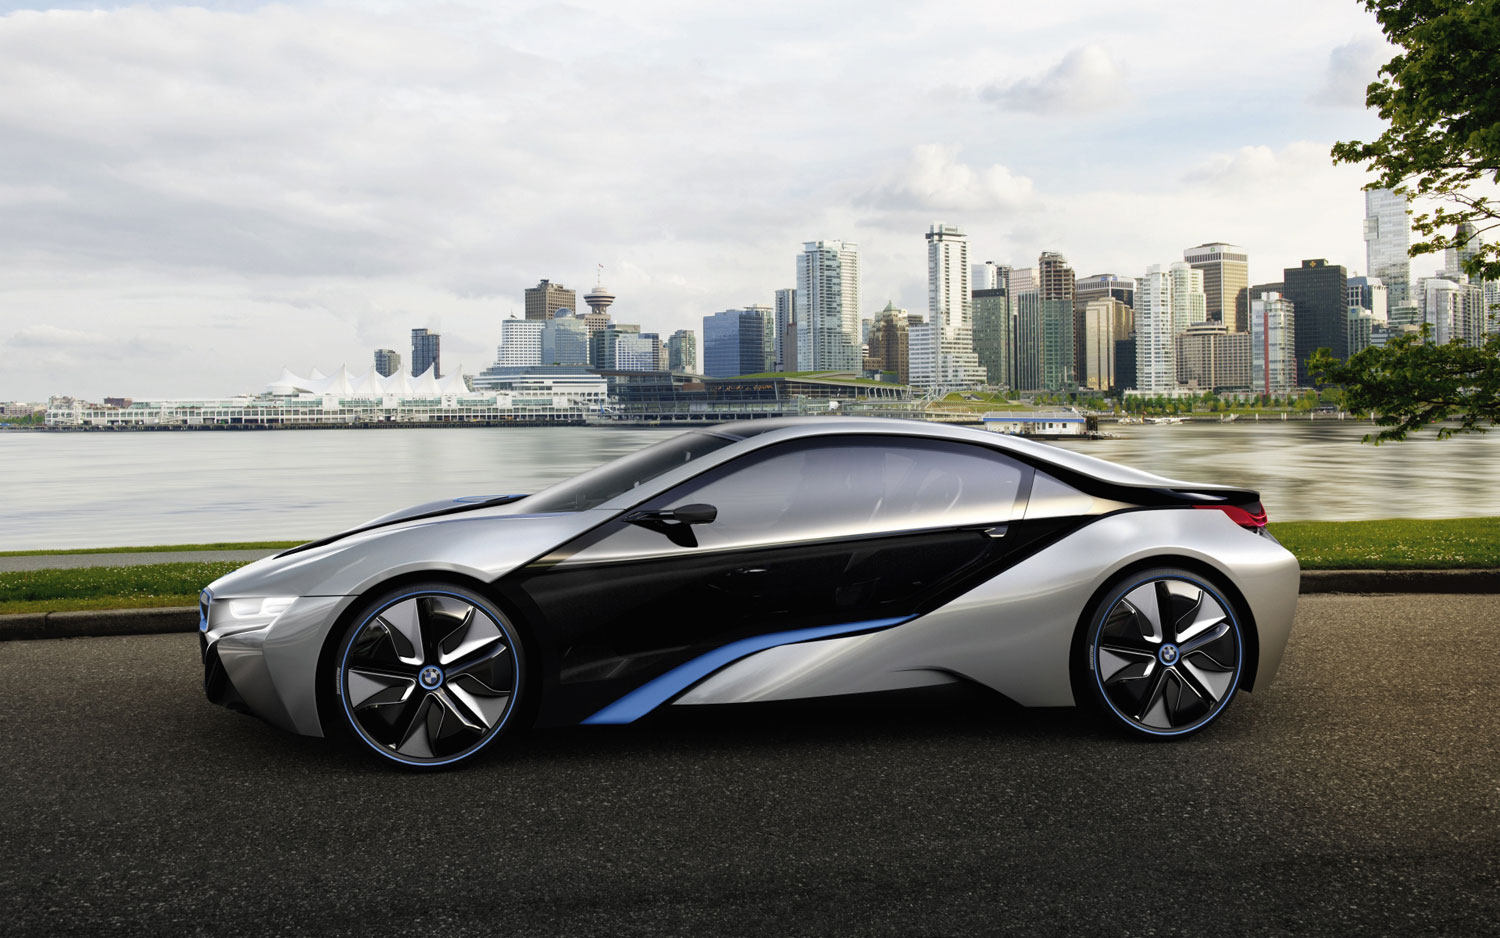 BMW i8 Concept - First Look - Automobile Magazine